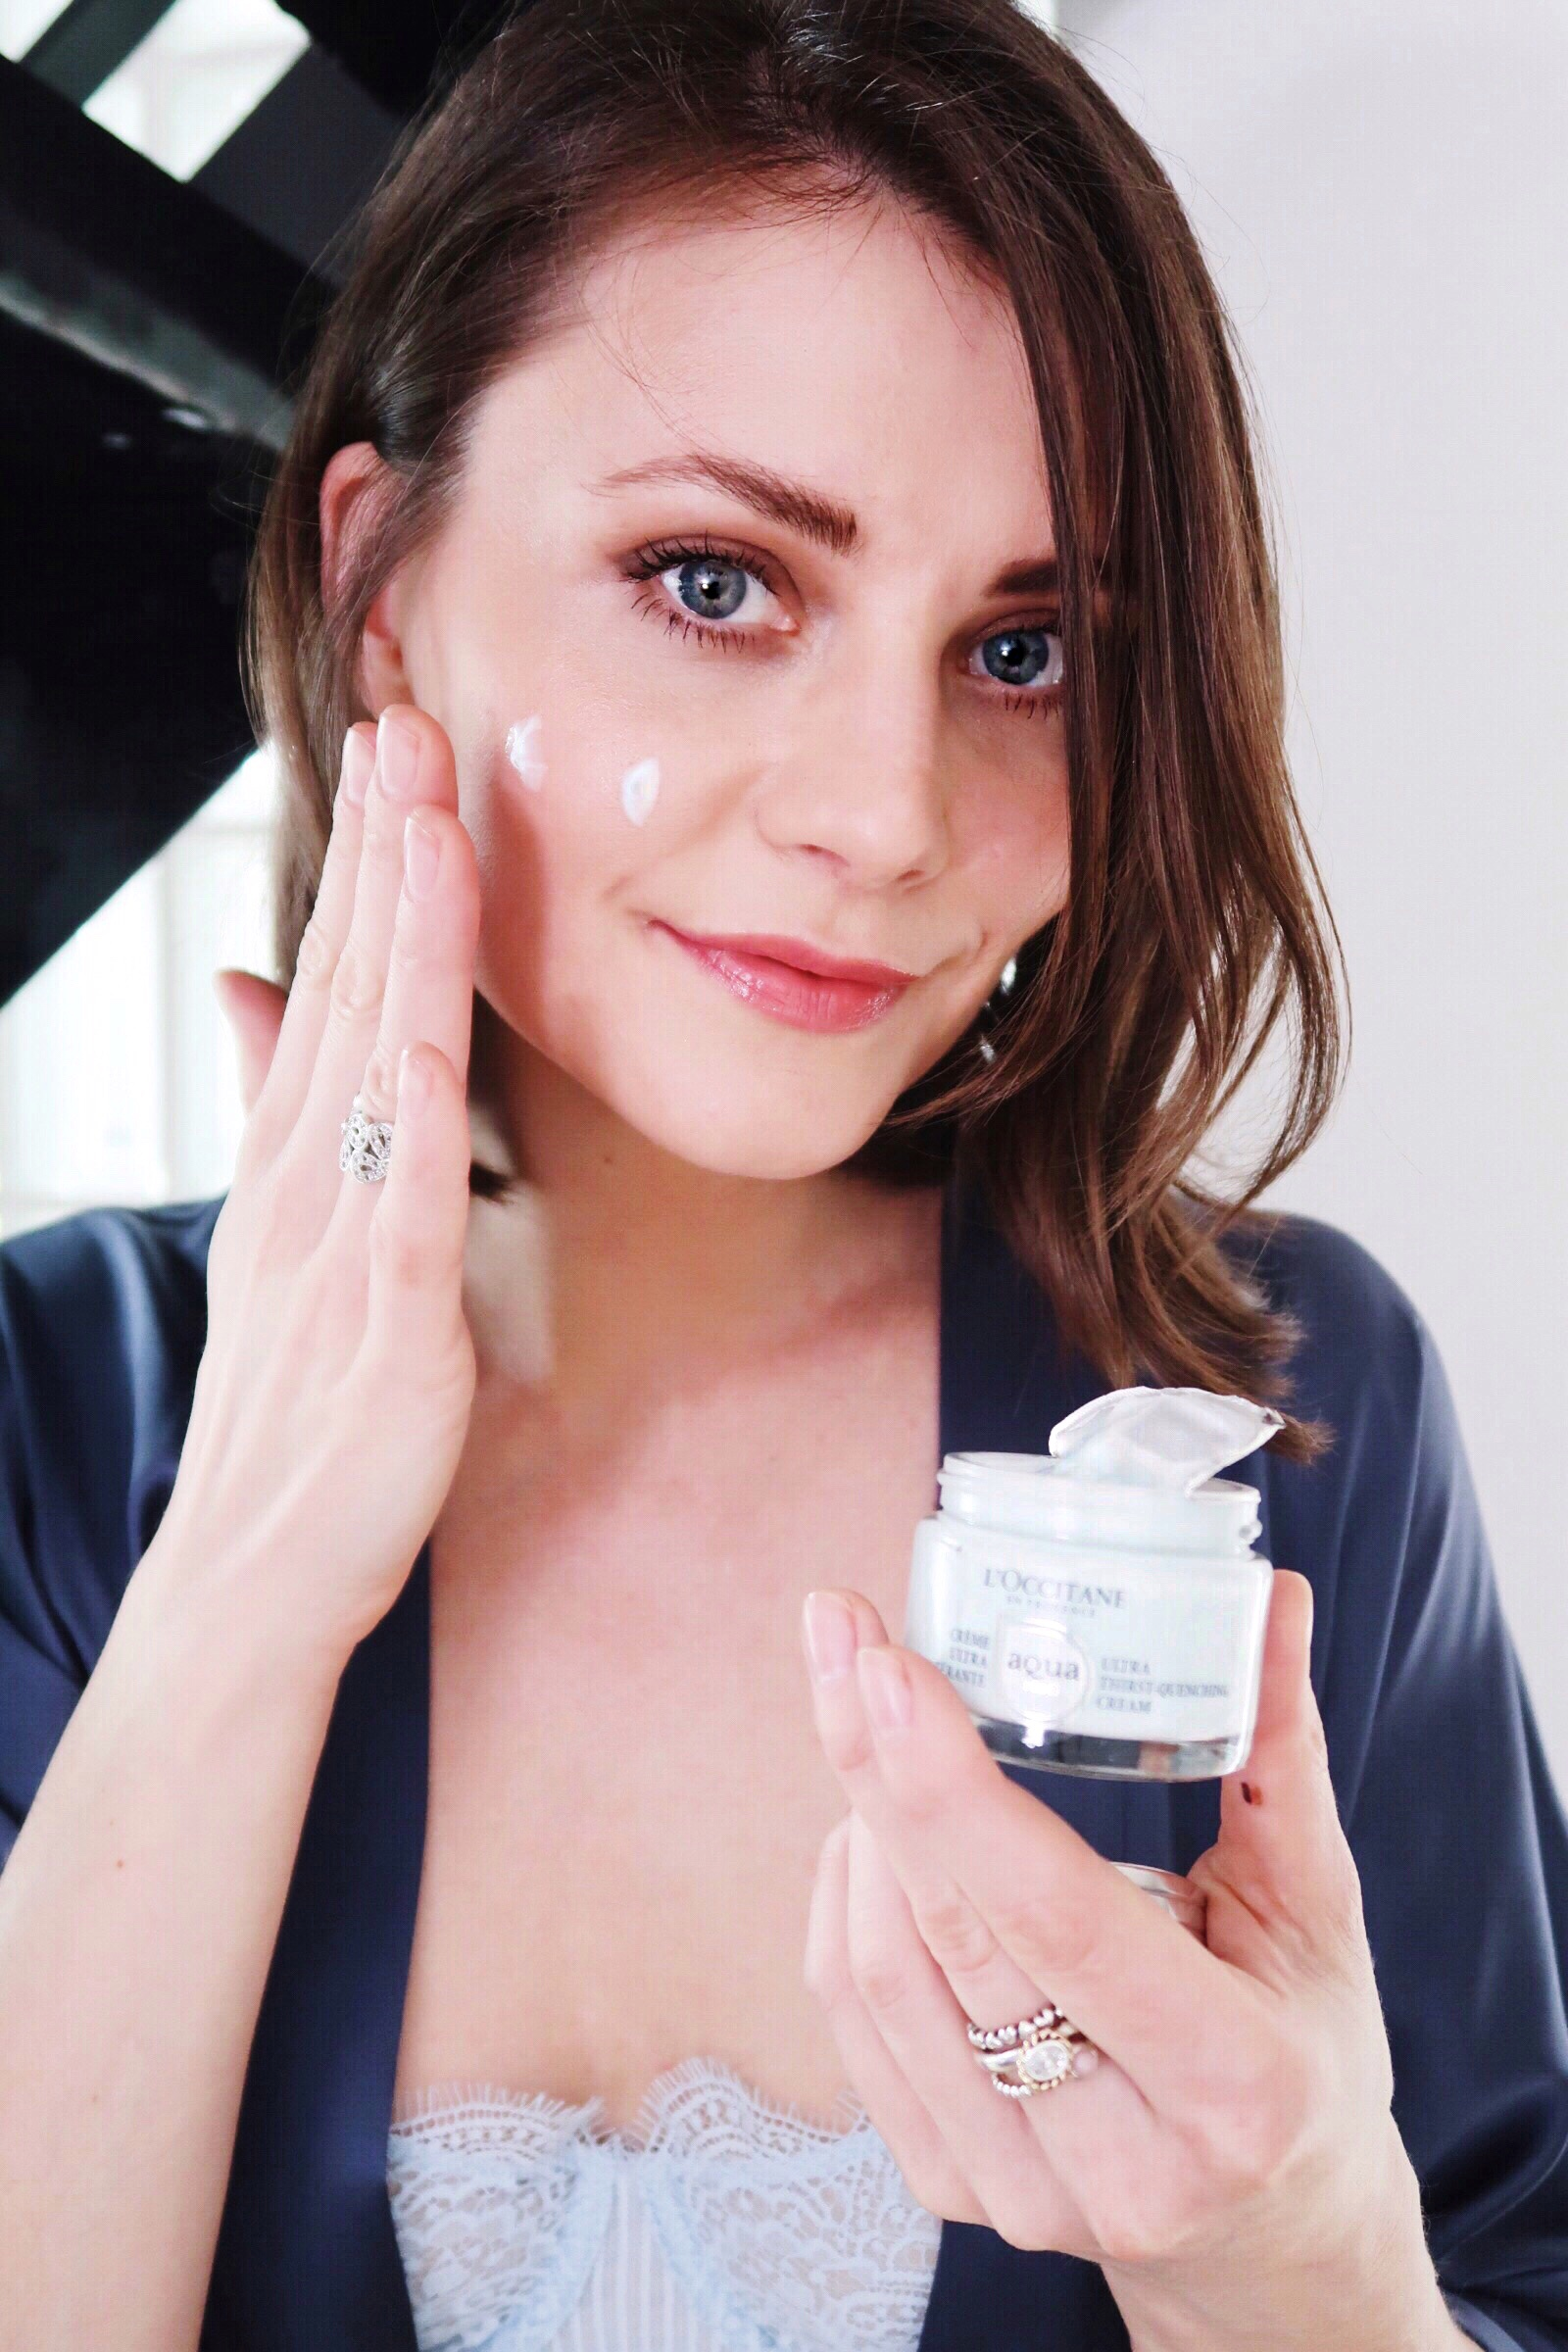 Ewa Social Beautify using L'Occitane. New, best hydrating skin care products.